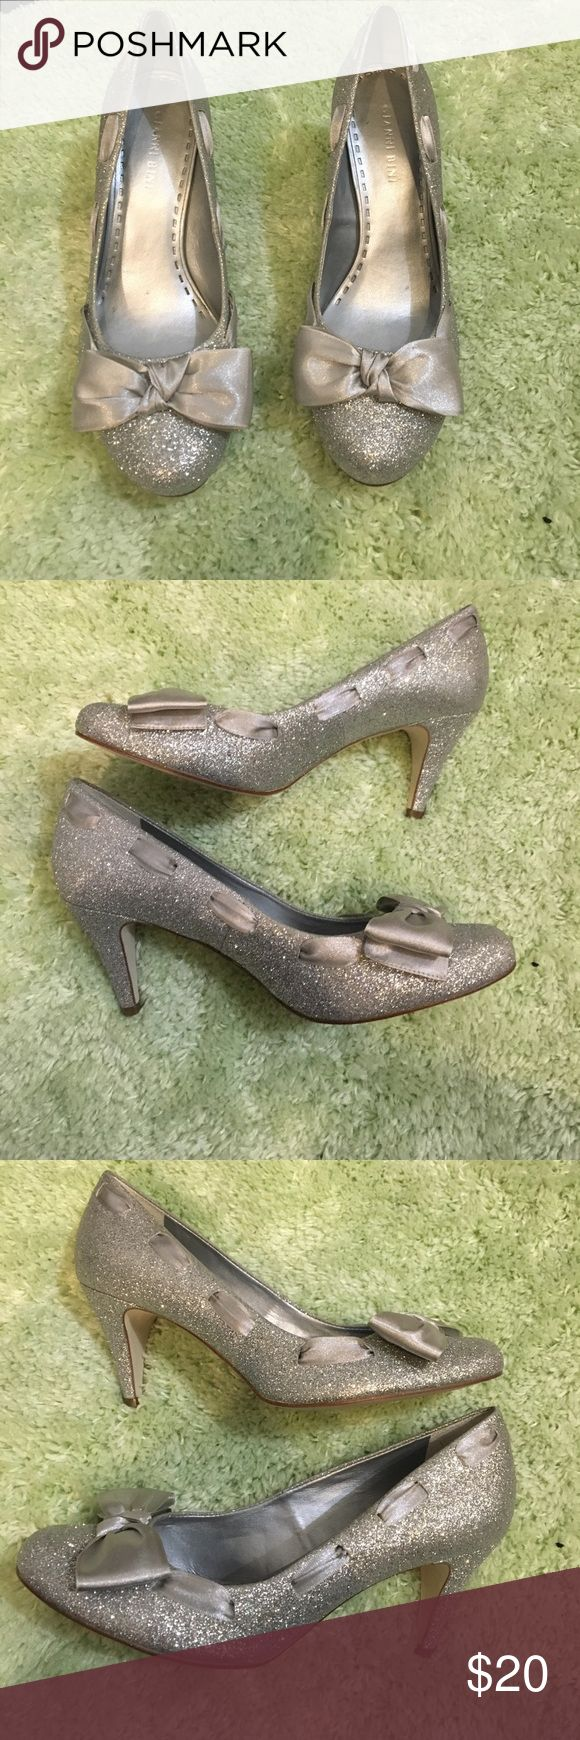 Gianni Bini Silver Sparkle Heels Size 8 New! Never worn, spot on bottom of shoes is from Dillard's price tag. Super sparkly! Perfect condition! No signs of wear at all!! Gianni Bini Shoes Heels